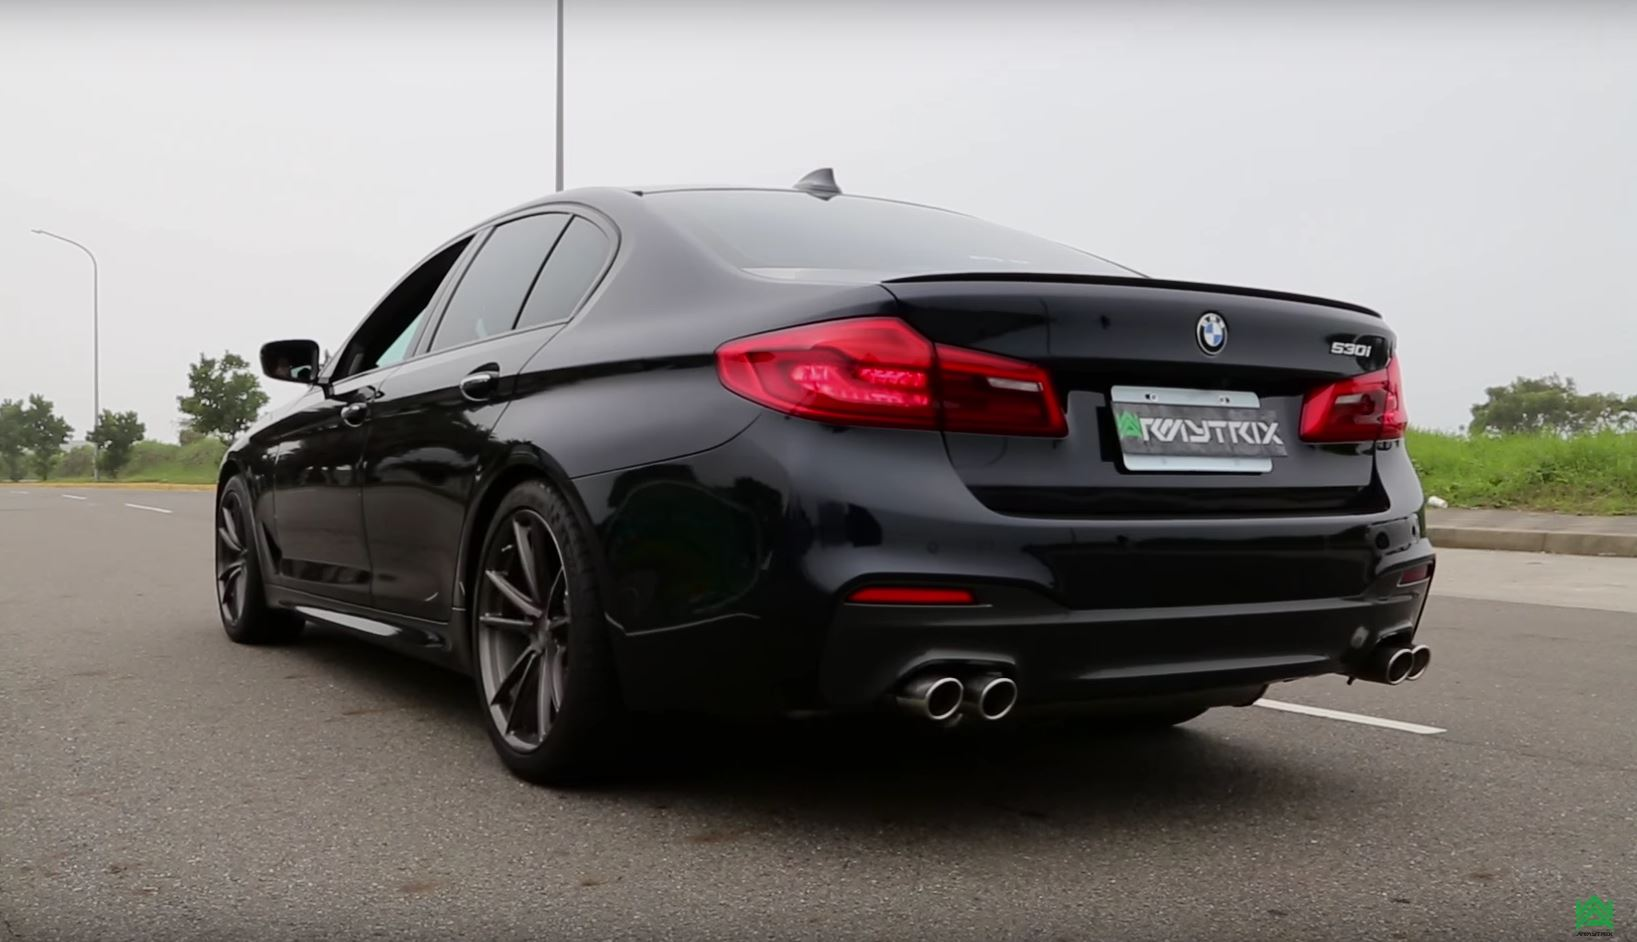 new bmw 530i with armytrix exhaust sounds like a hot hatch autoevolution. Black Bedroom Furniture Sets. Home Design Ideas